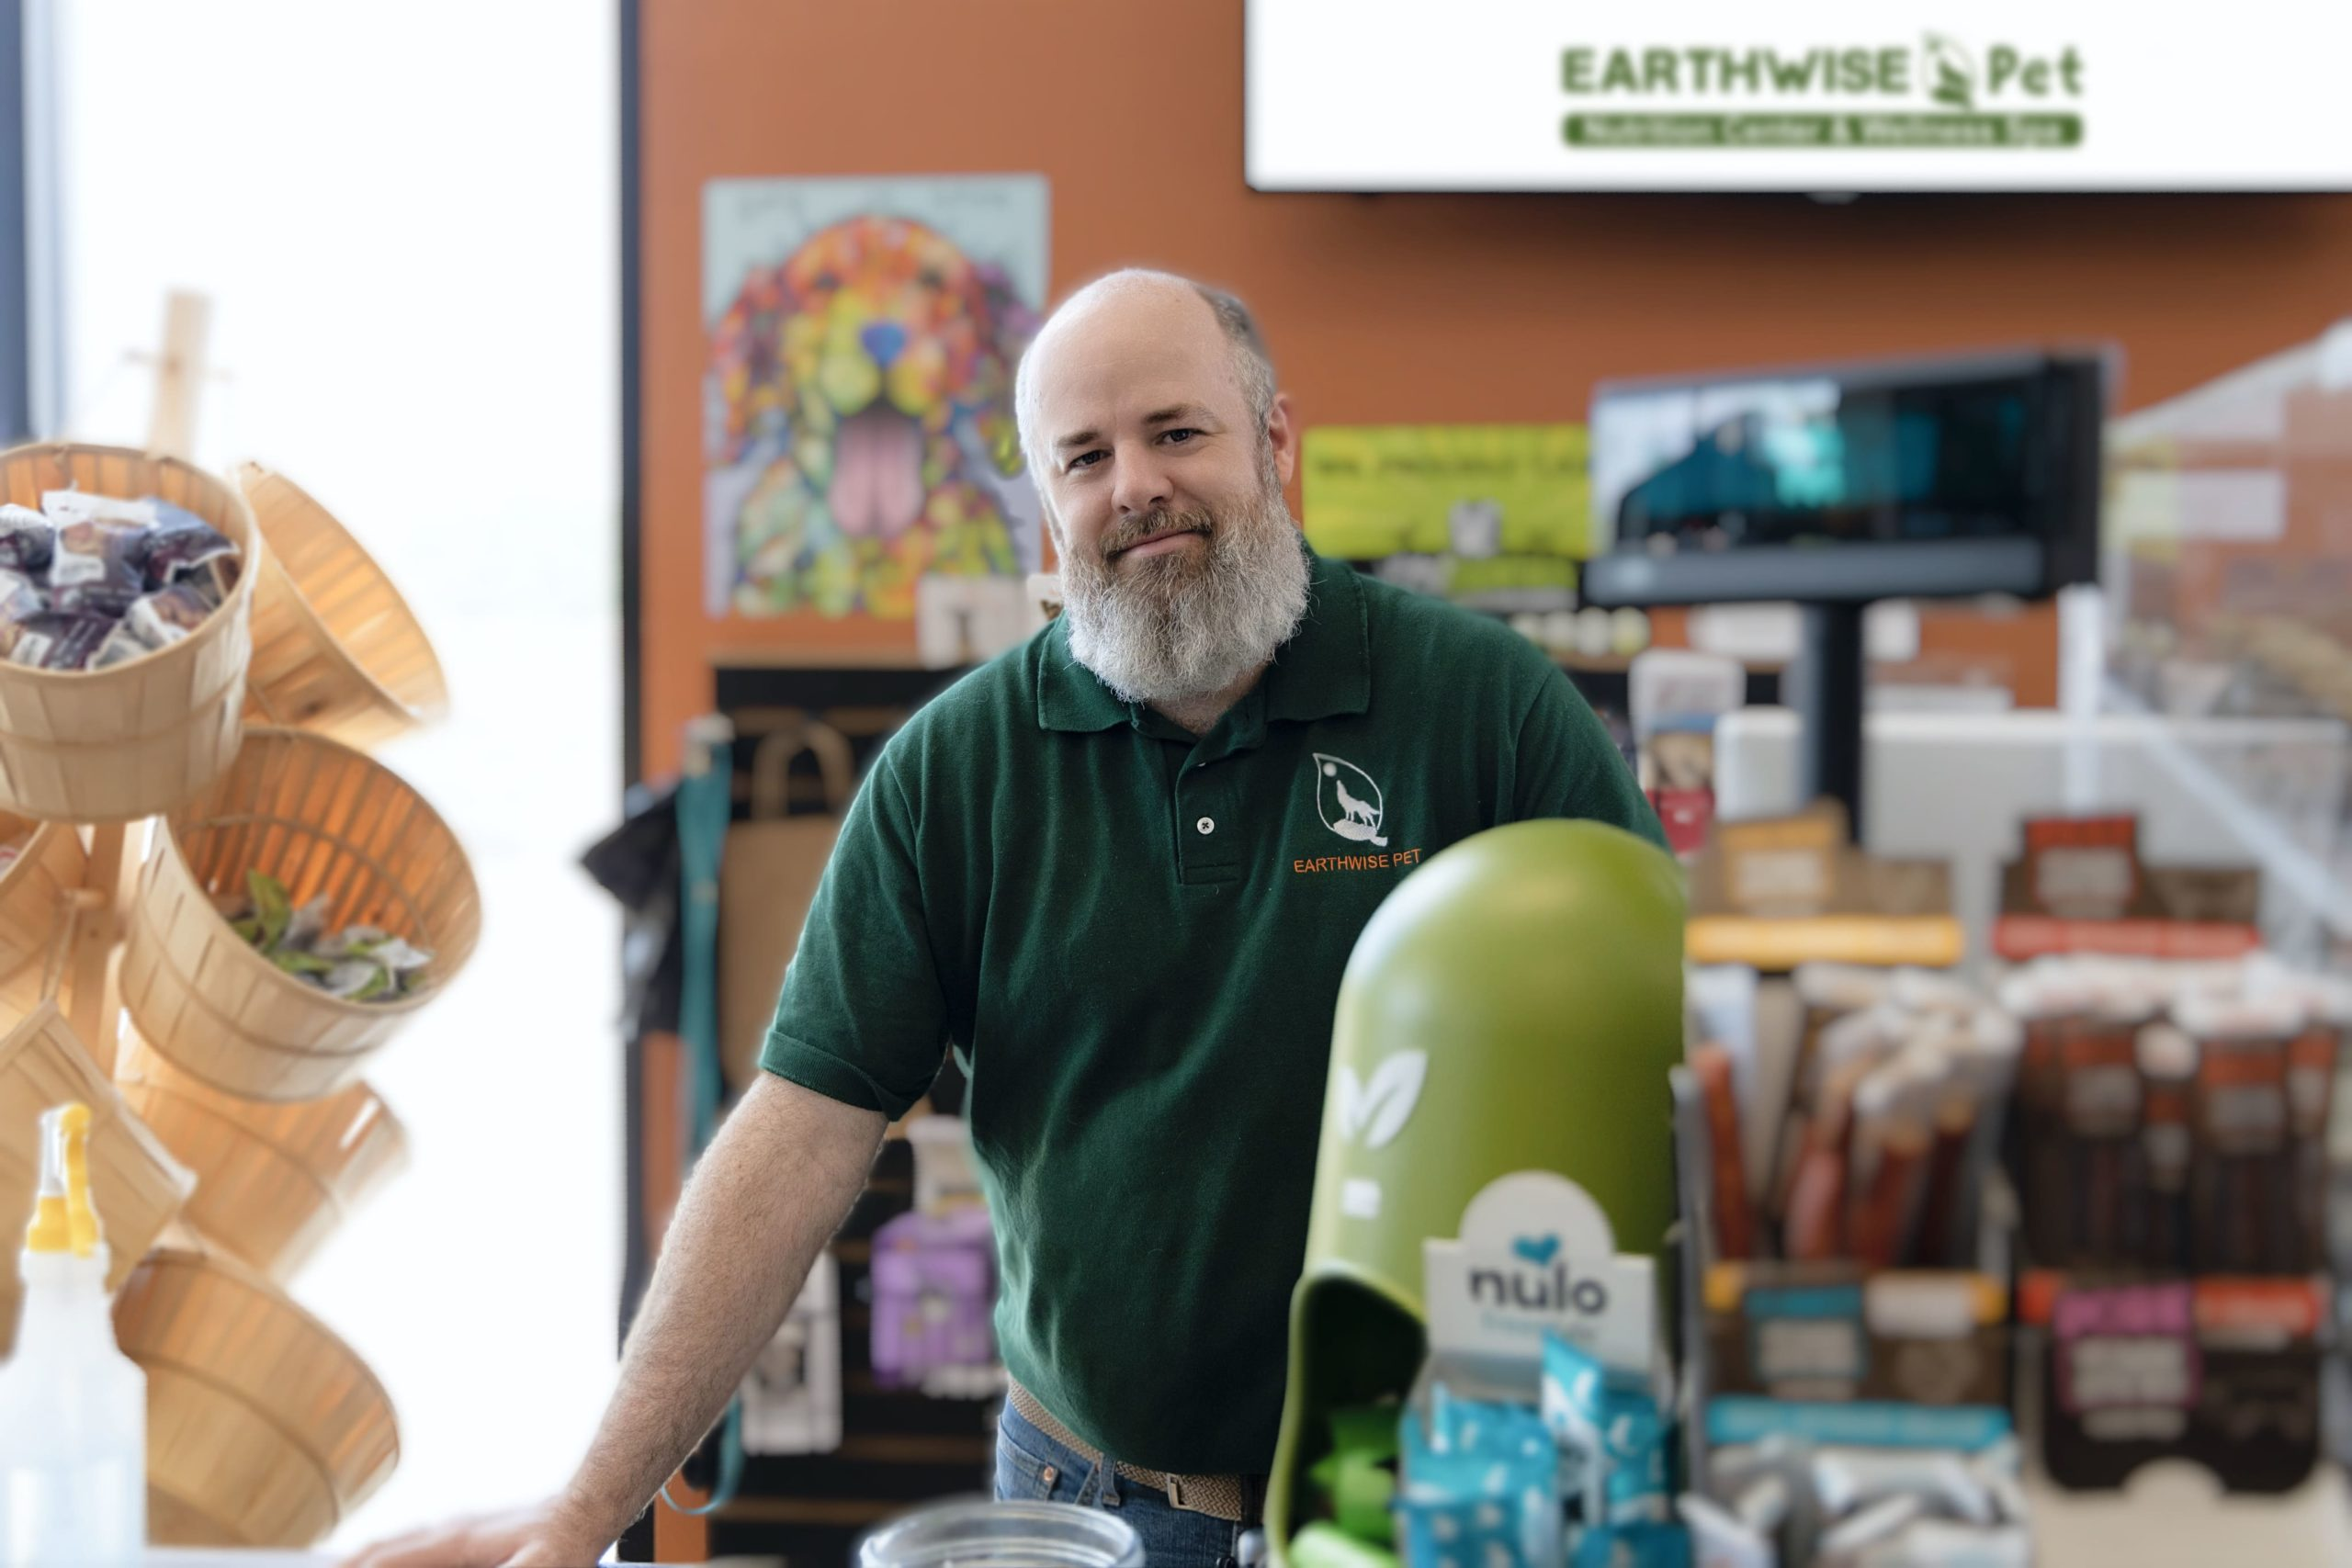 EarthWise Pet Franchisee Smiling at the Store Counter